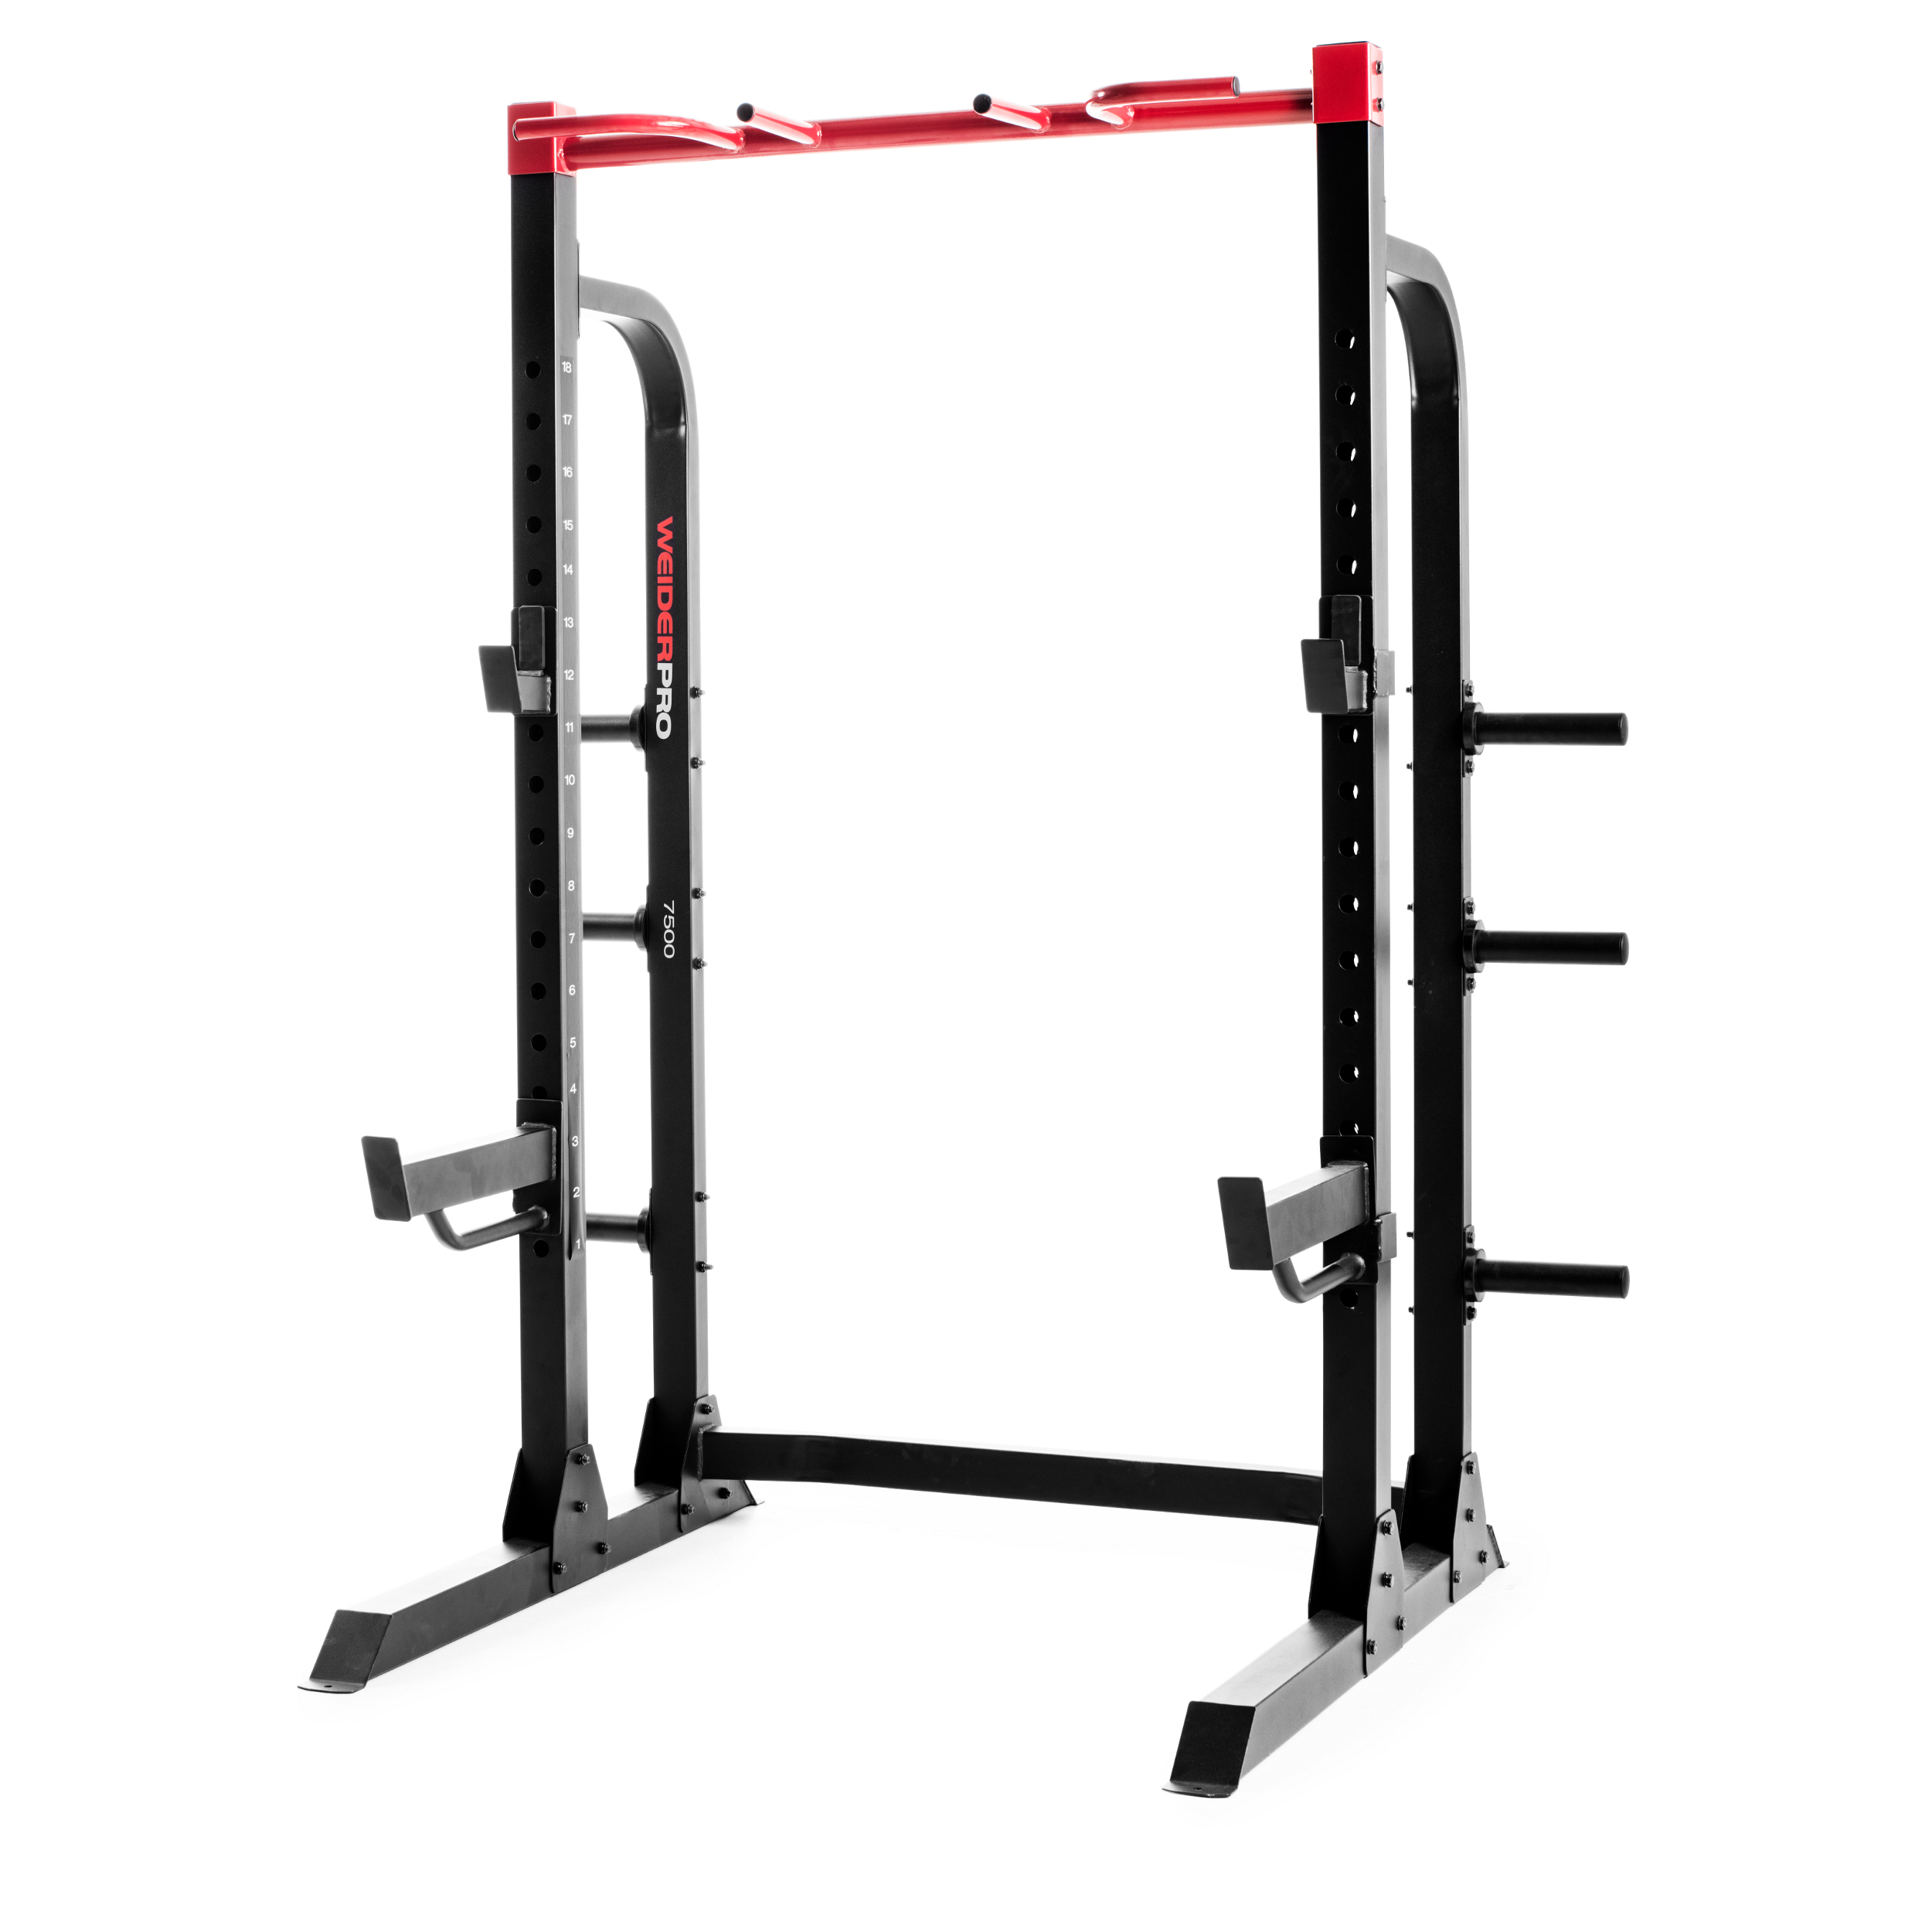 Garage Gym Half Rack Weider Pro 7500 Power Half Rack